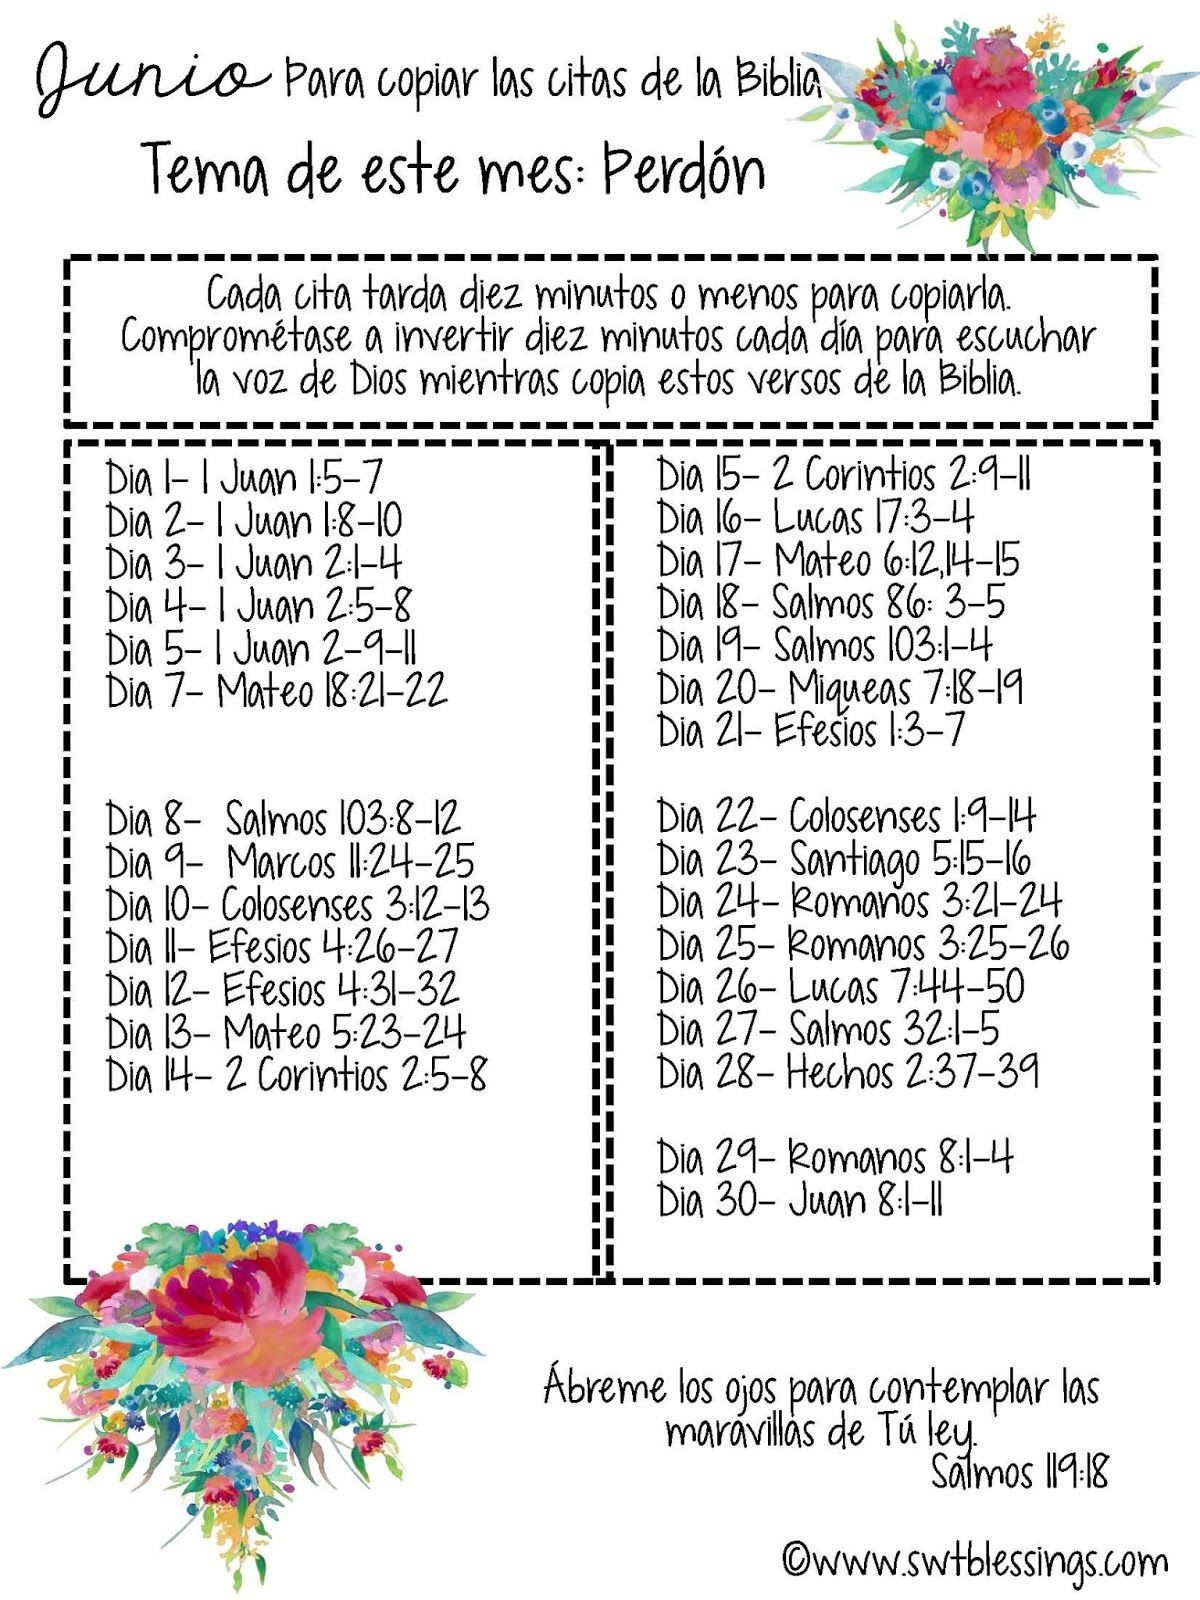 10 Escribiendo La Escritura Biblia Ideas Scripture Writing Plans Writing Plan Read Bible